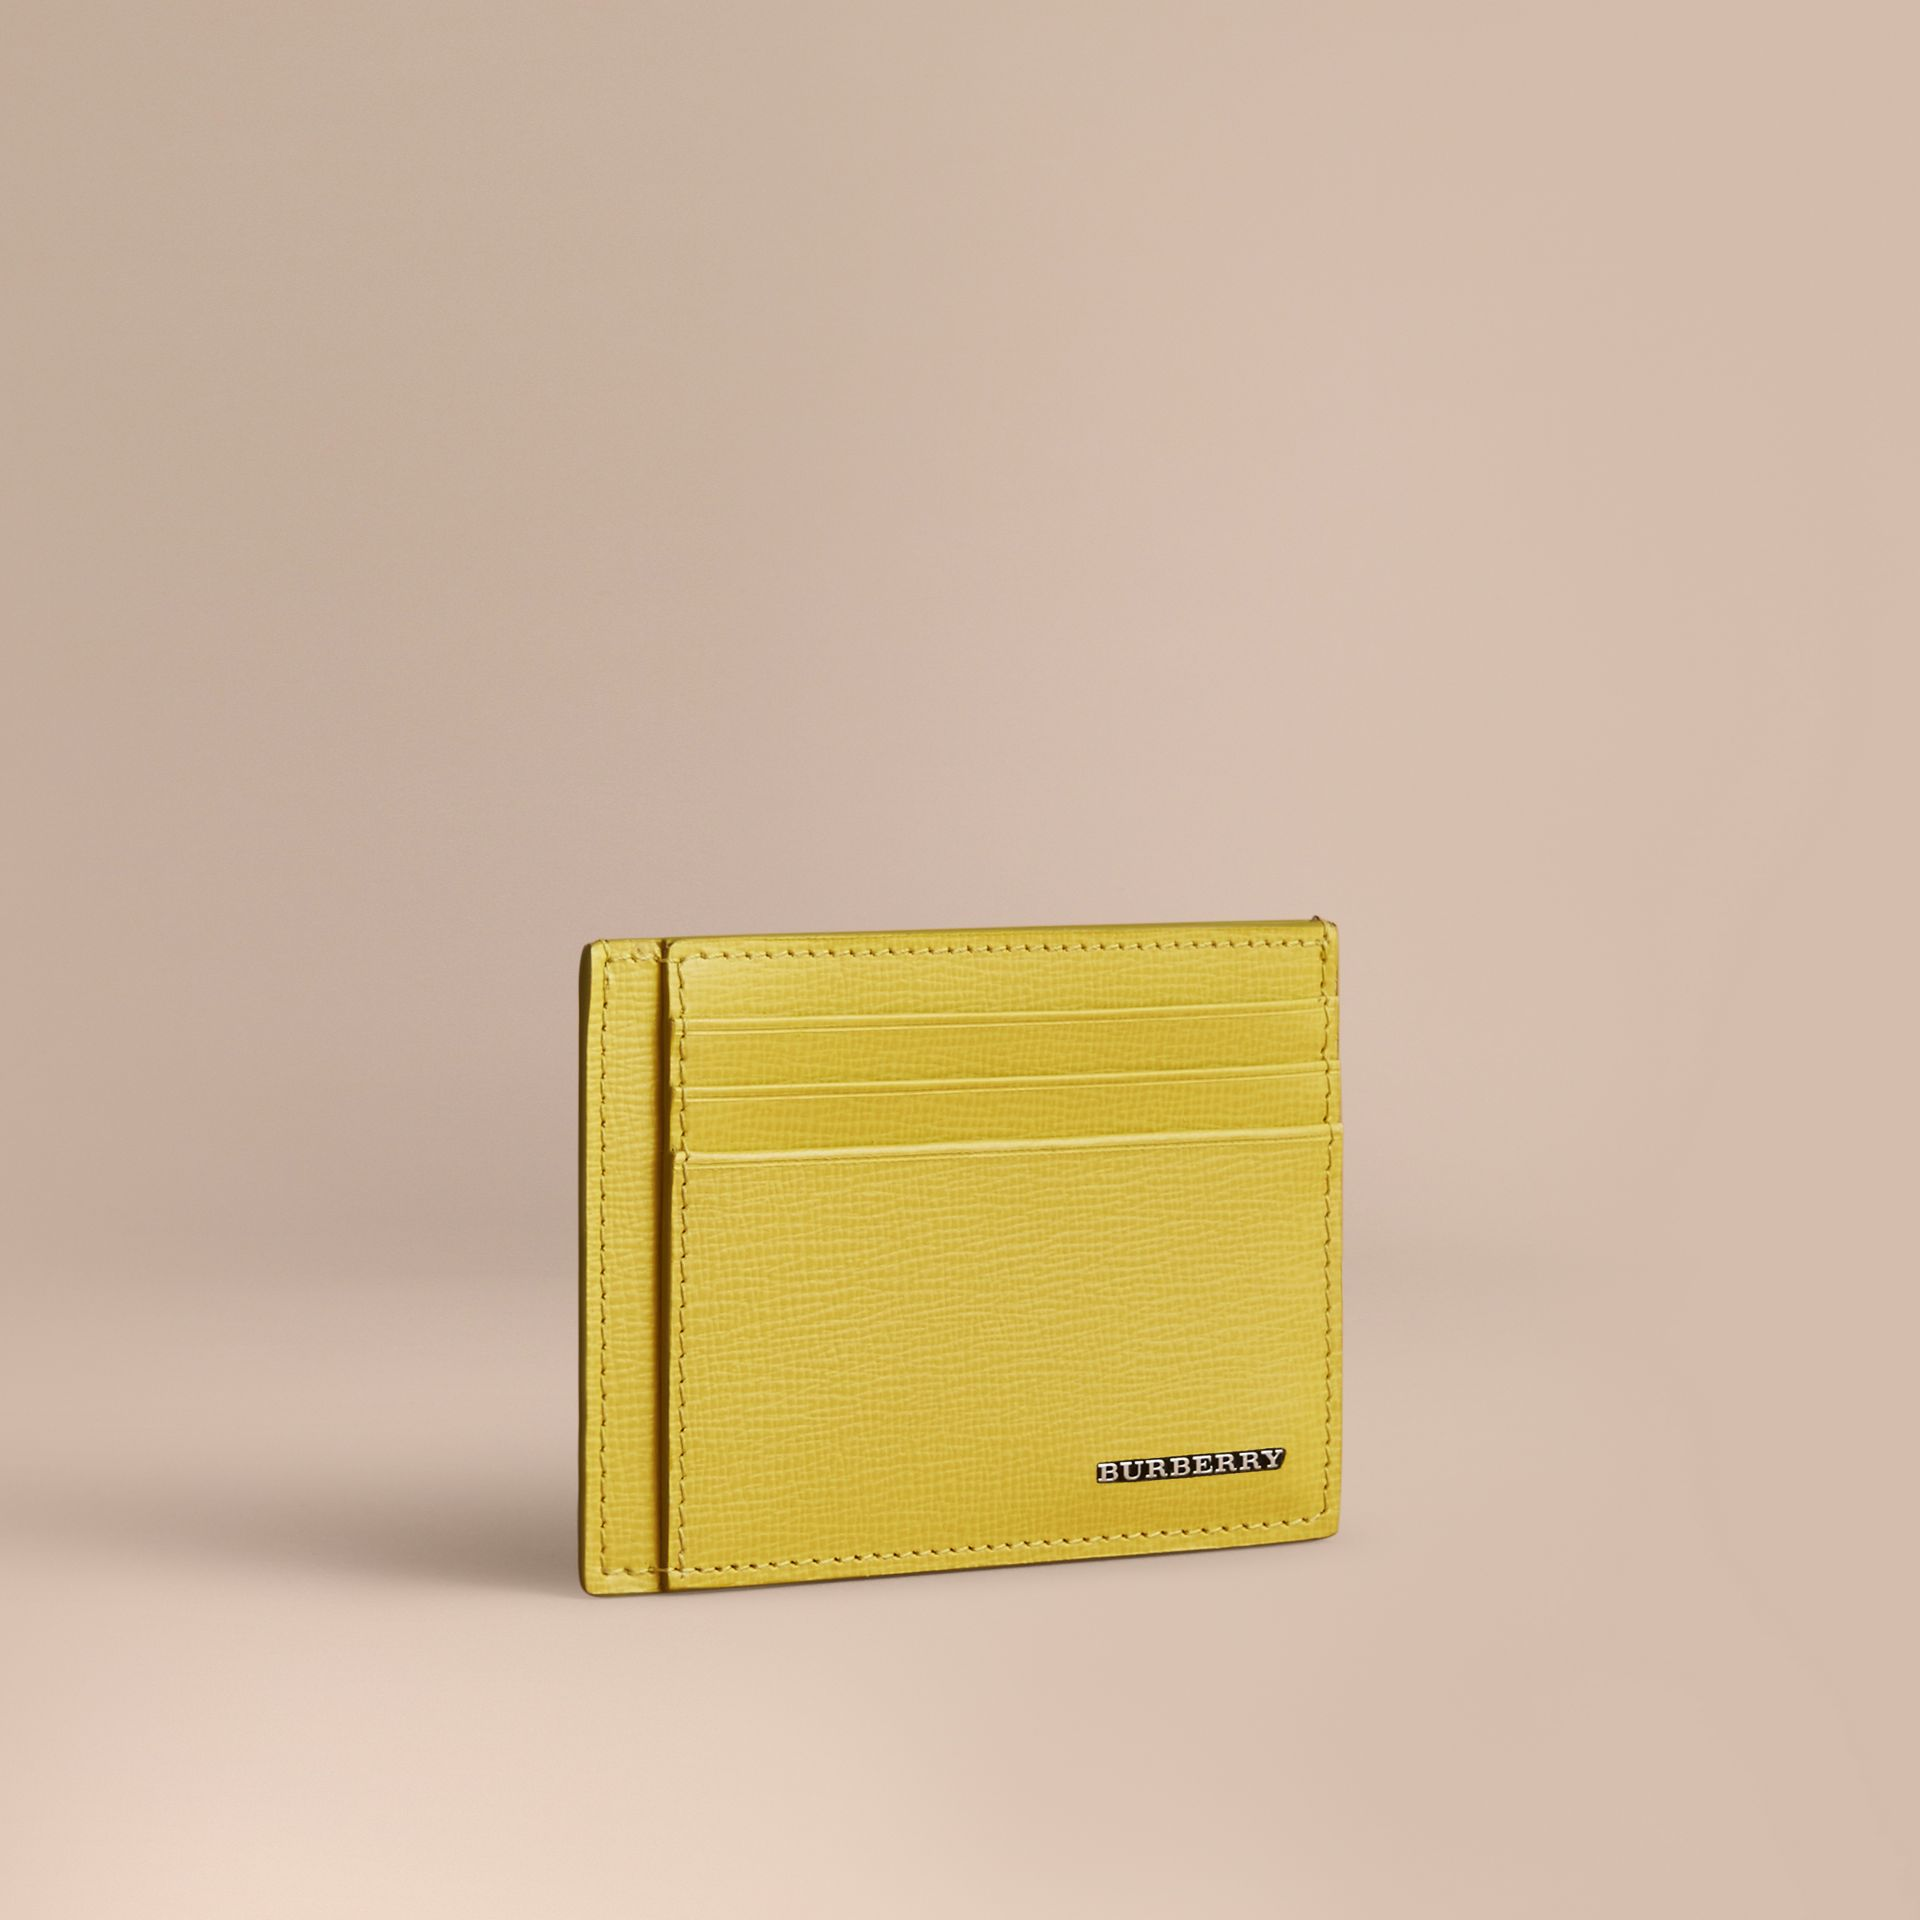 London Leather Card Case in Bright Citrus | Burberry Australia - gallery image 1